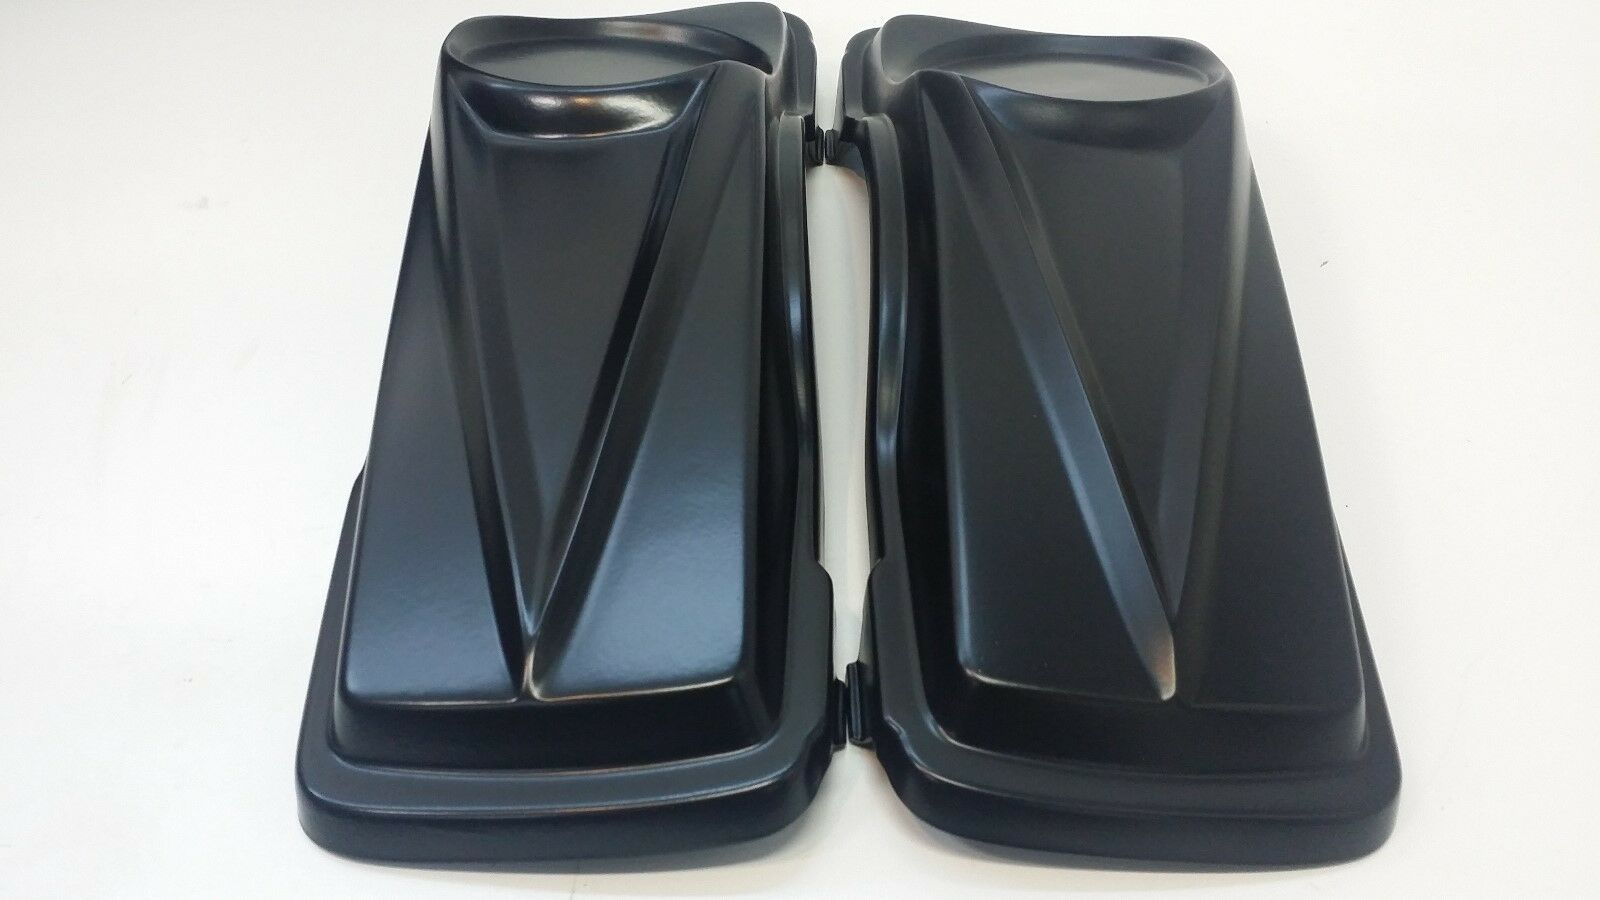 Harley Davidson Drop back Stretched Saddlbags Fender 6.5 #3 Lids Touring 97-08